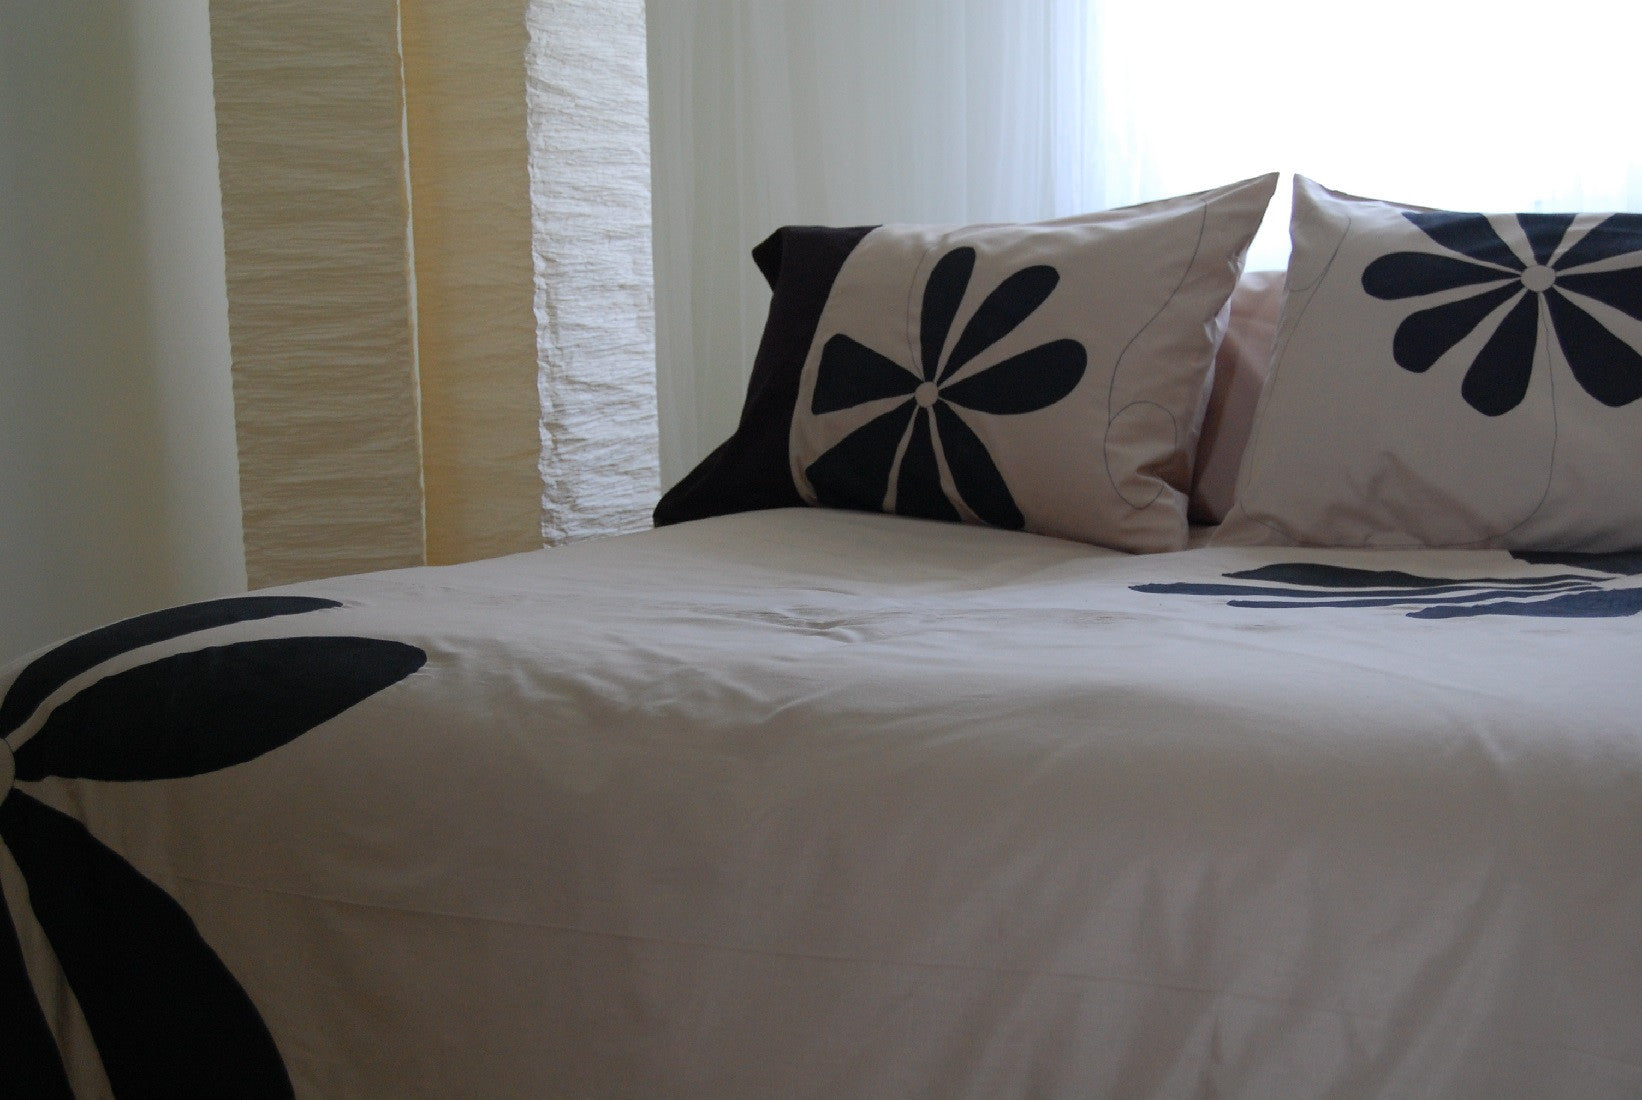 "Duvet Cover Daisy Design, 100% Organic Cotton or Cotton Sateen, Bamboo Fabric, luxury and ""Smooth Tech"" softness, soft bedding means great sleep and a great sleep, is priceless. Duvet Cover & Duvet Sets, Bamboo Duvet Cover Bamboo, Duvet Cover Cotton Sateen Duvet Cover, Duvet Cover Eco, Duvet Cover Organic, Modern Duvet Cover"